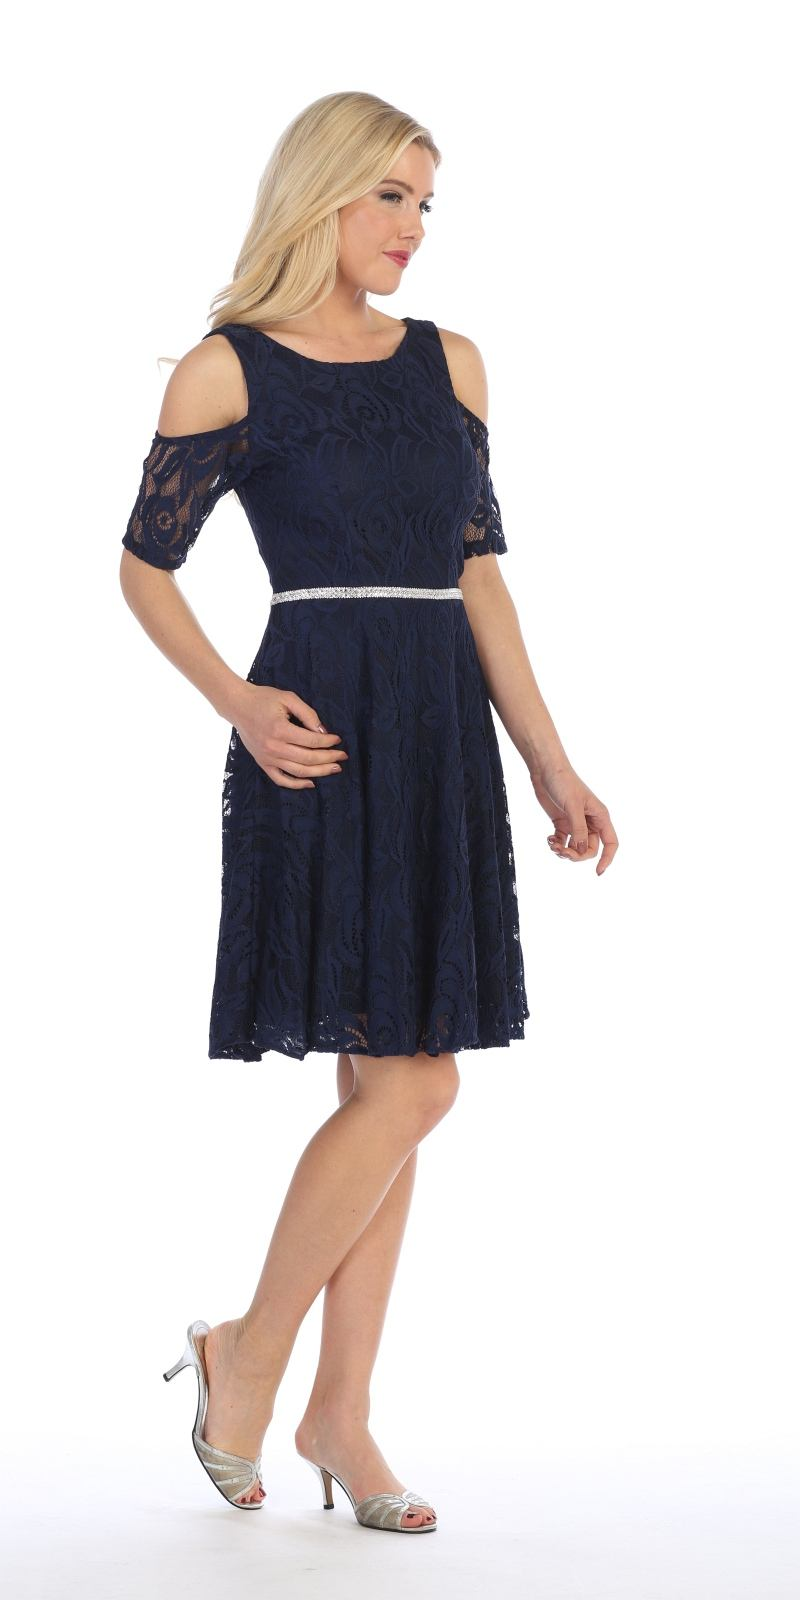 eb8edc31075 ... Celavie 6307 Navy Blue Lace A-Line Wedding Guest Dress Cold Shoulder  Short Sleeves Side ...